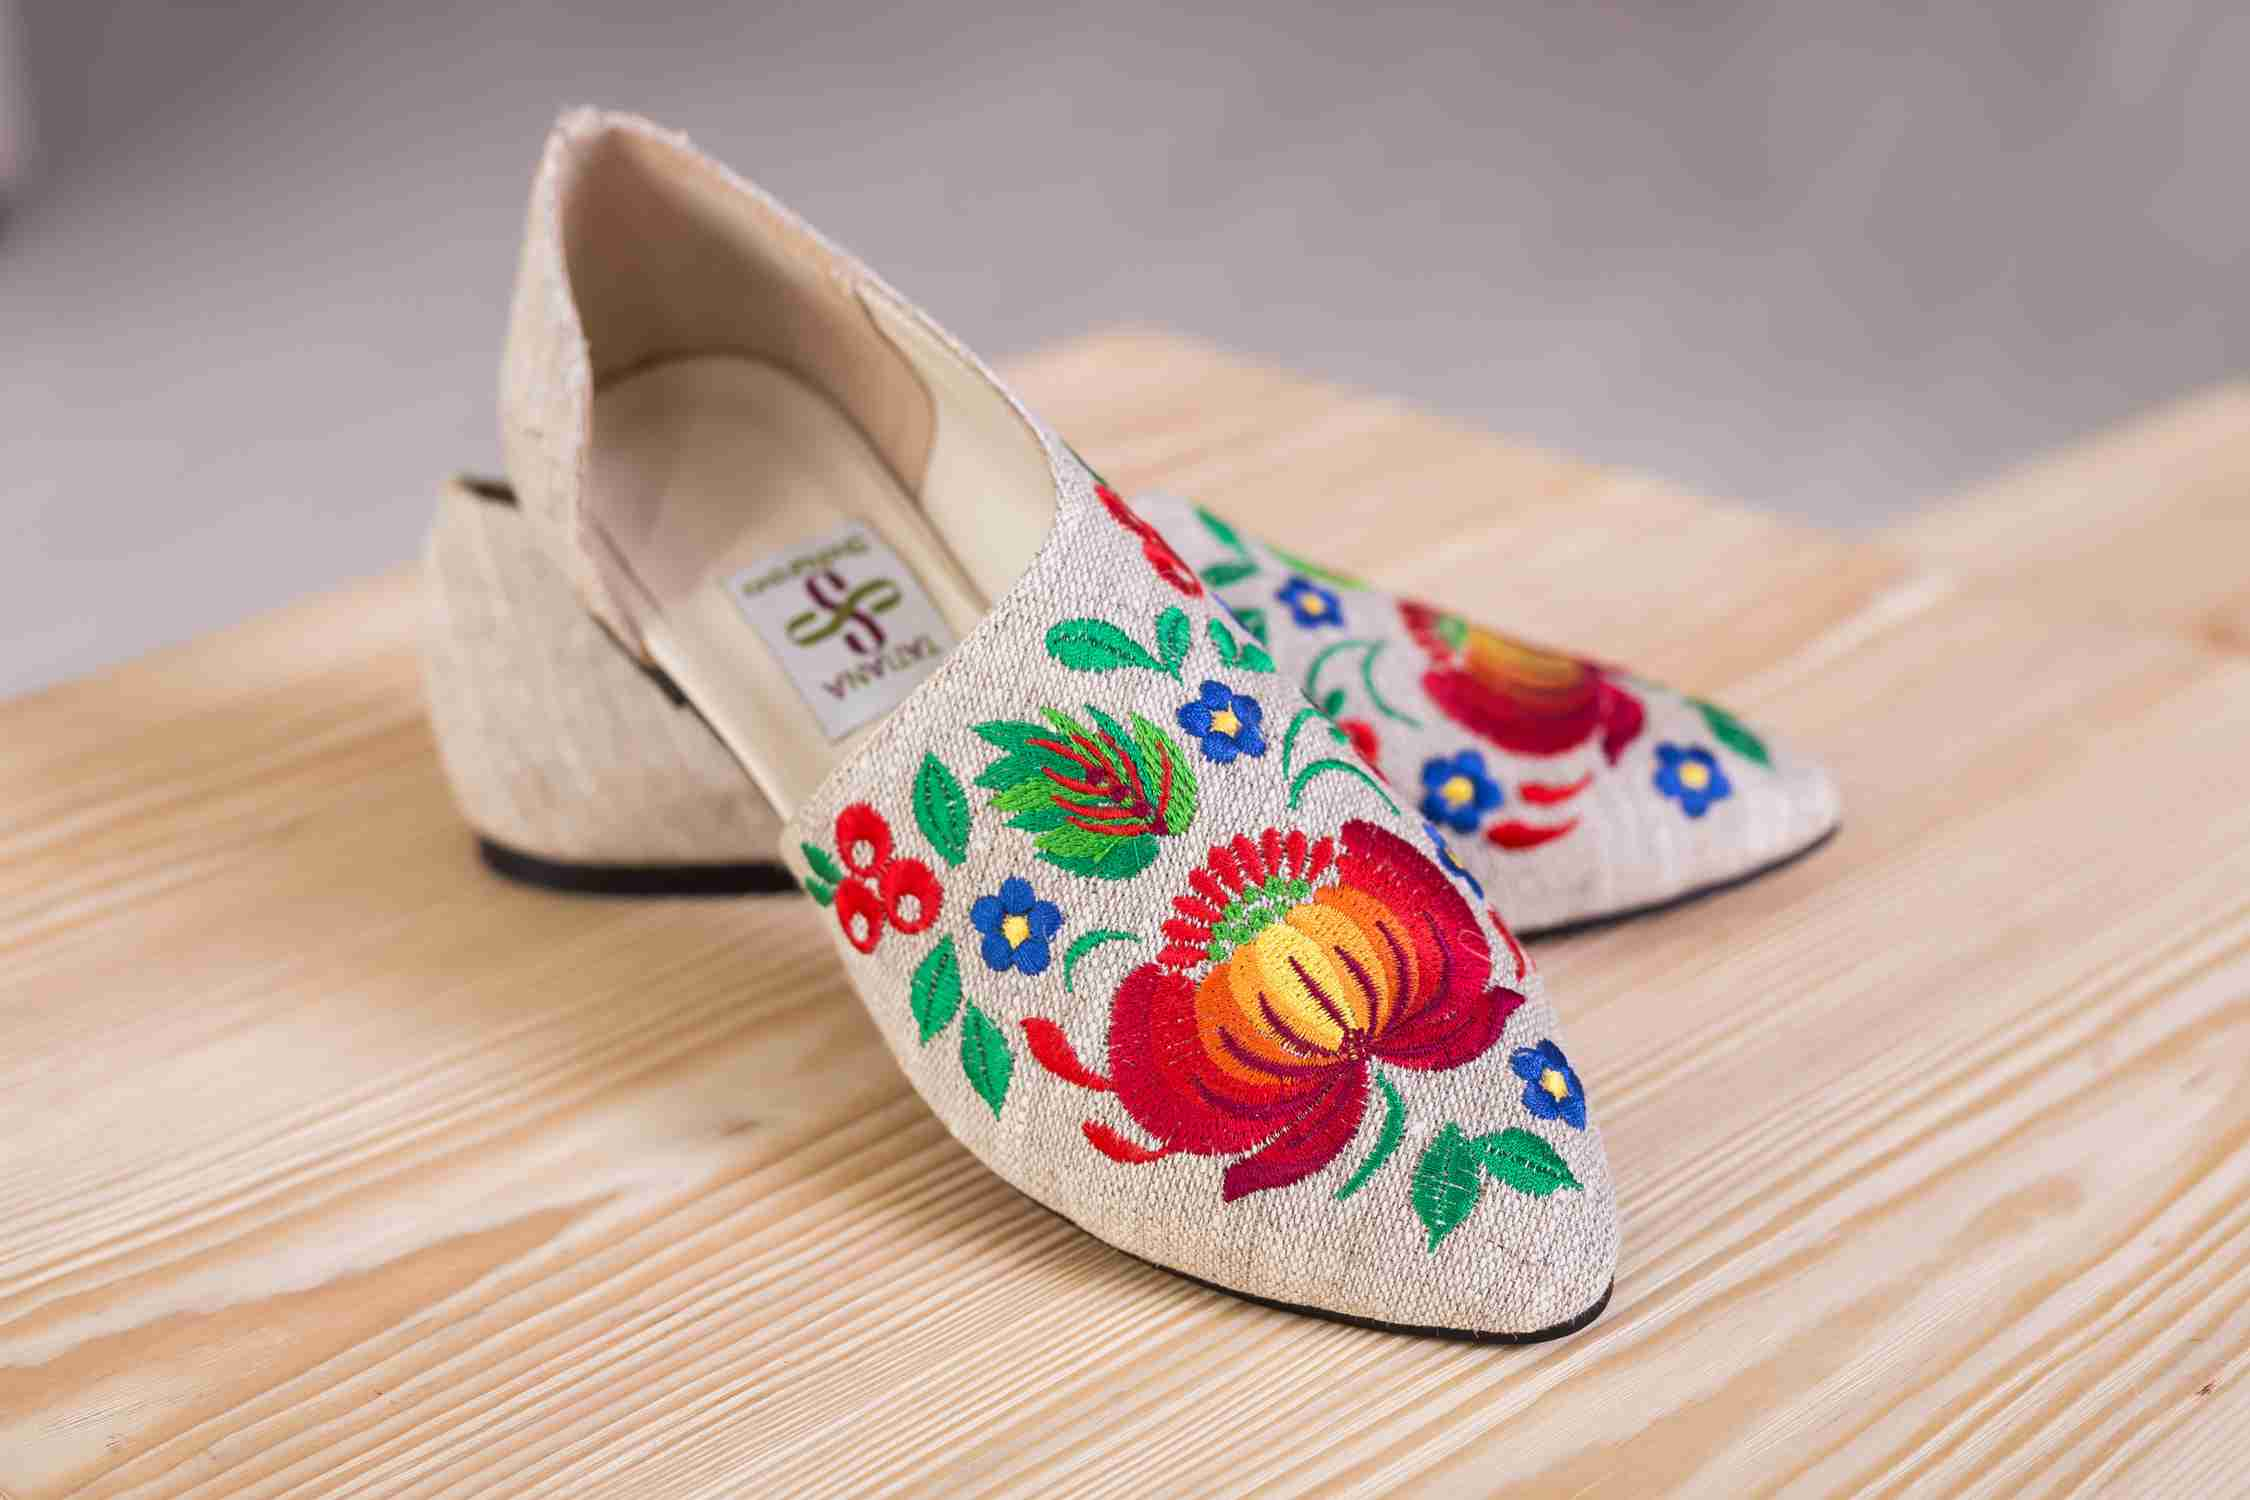 stylish shoes with embroidery